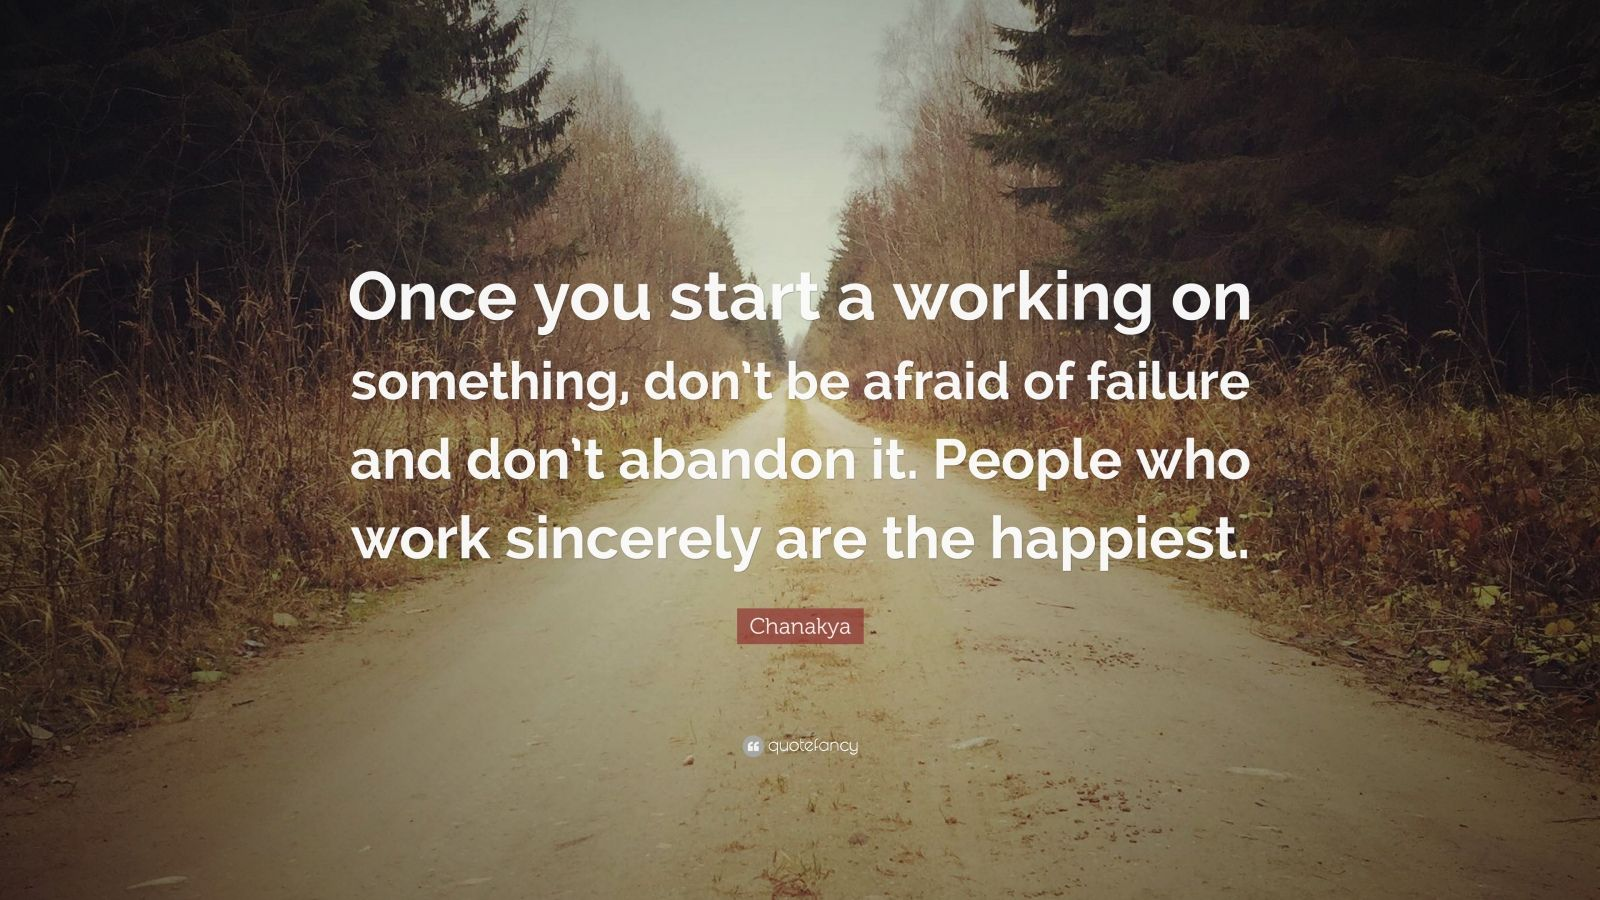 """Chanakya Quote: """"Once you start a working on something, don't be afraid of failure and don't abandon it. People who work sincerely are the happiest."""""""